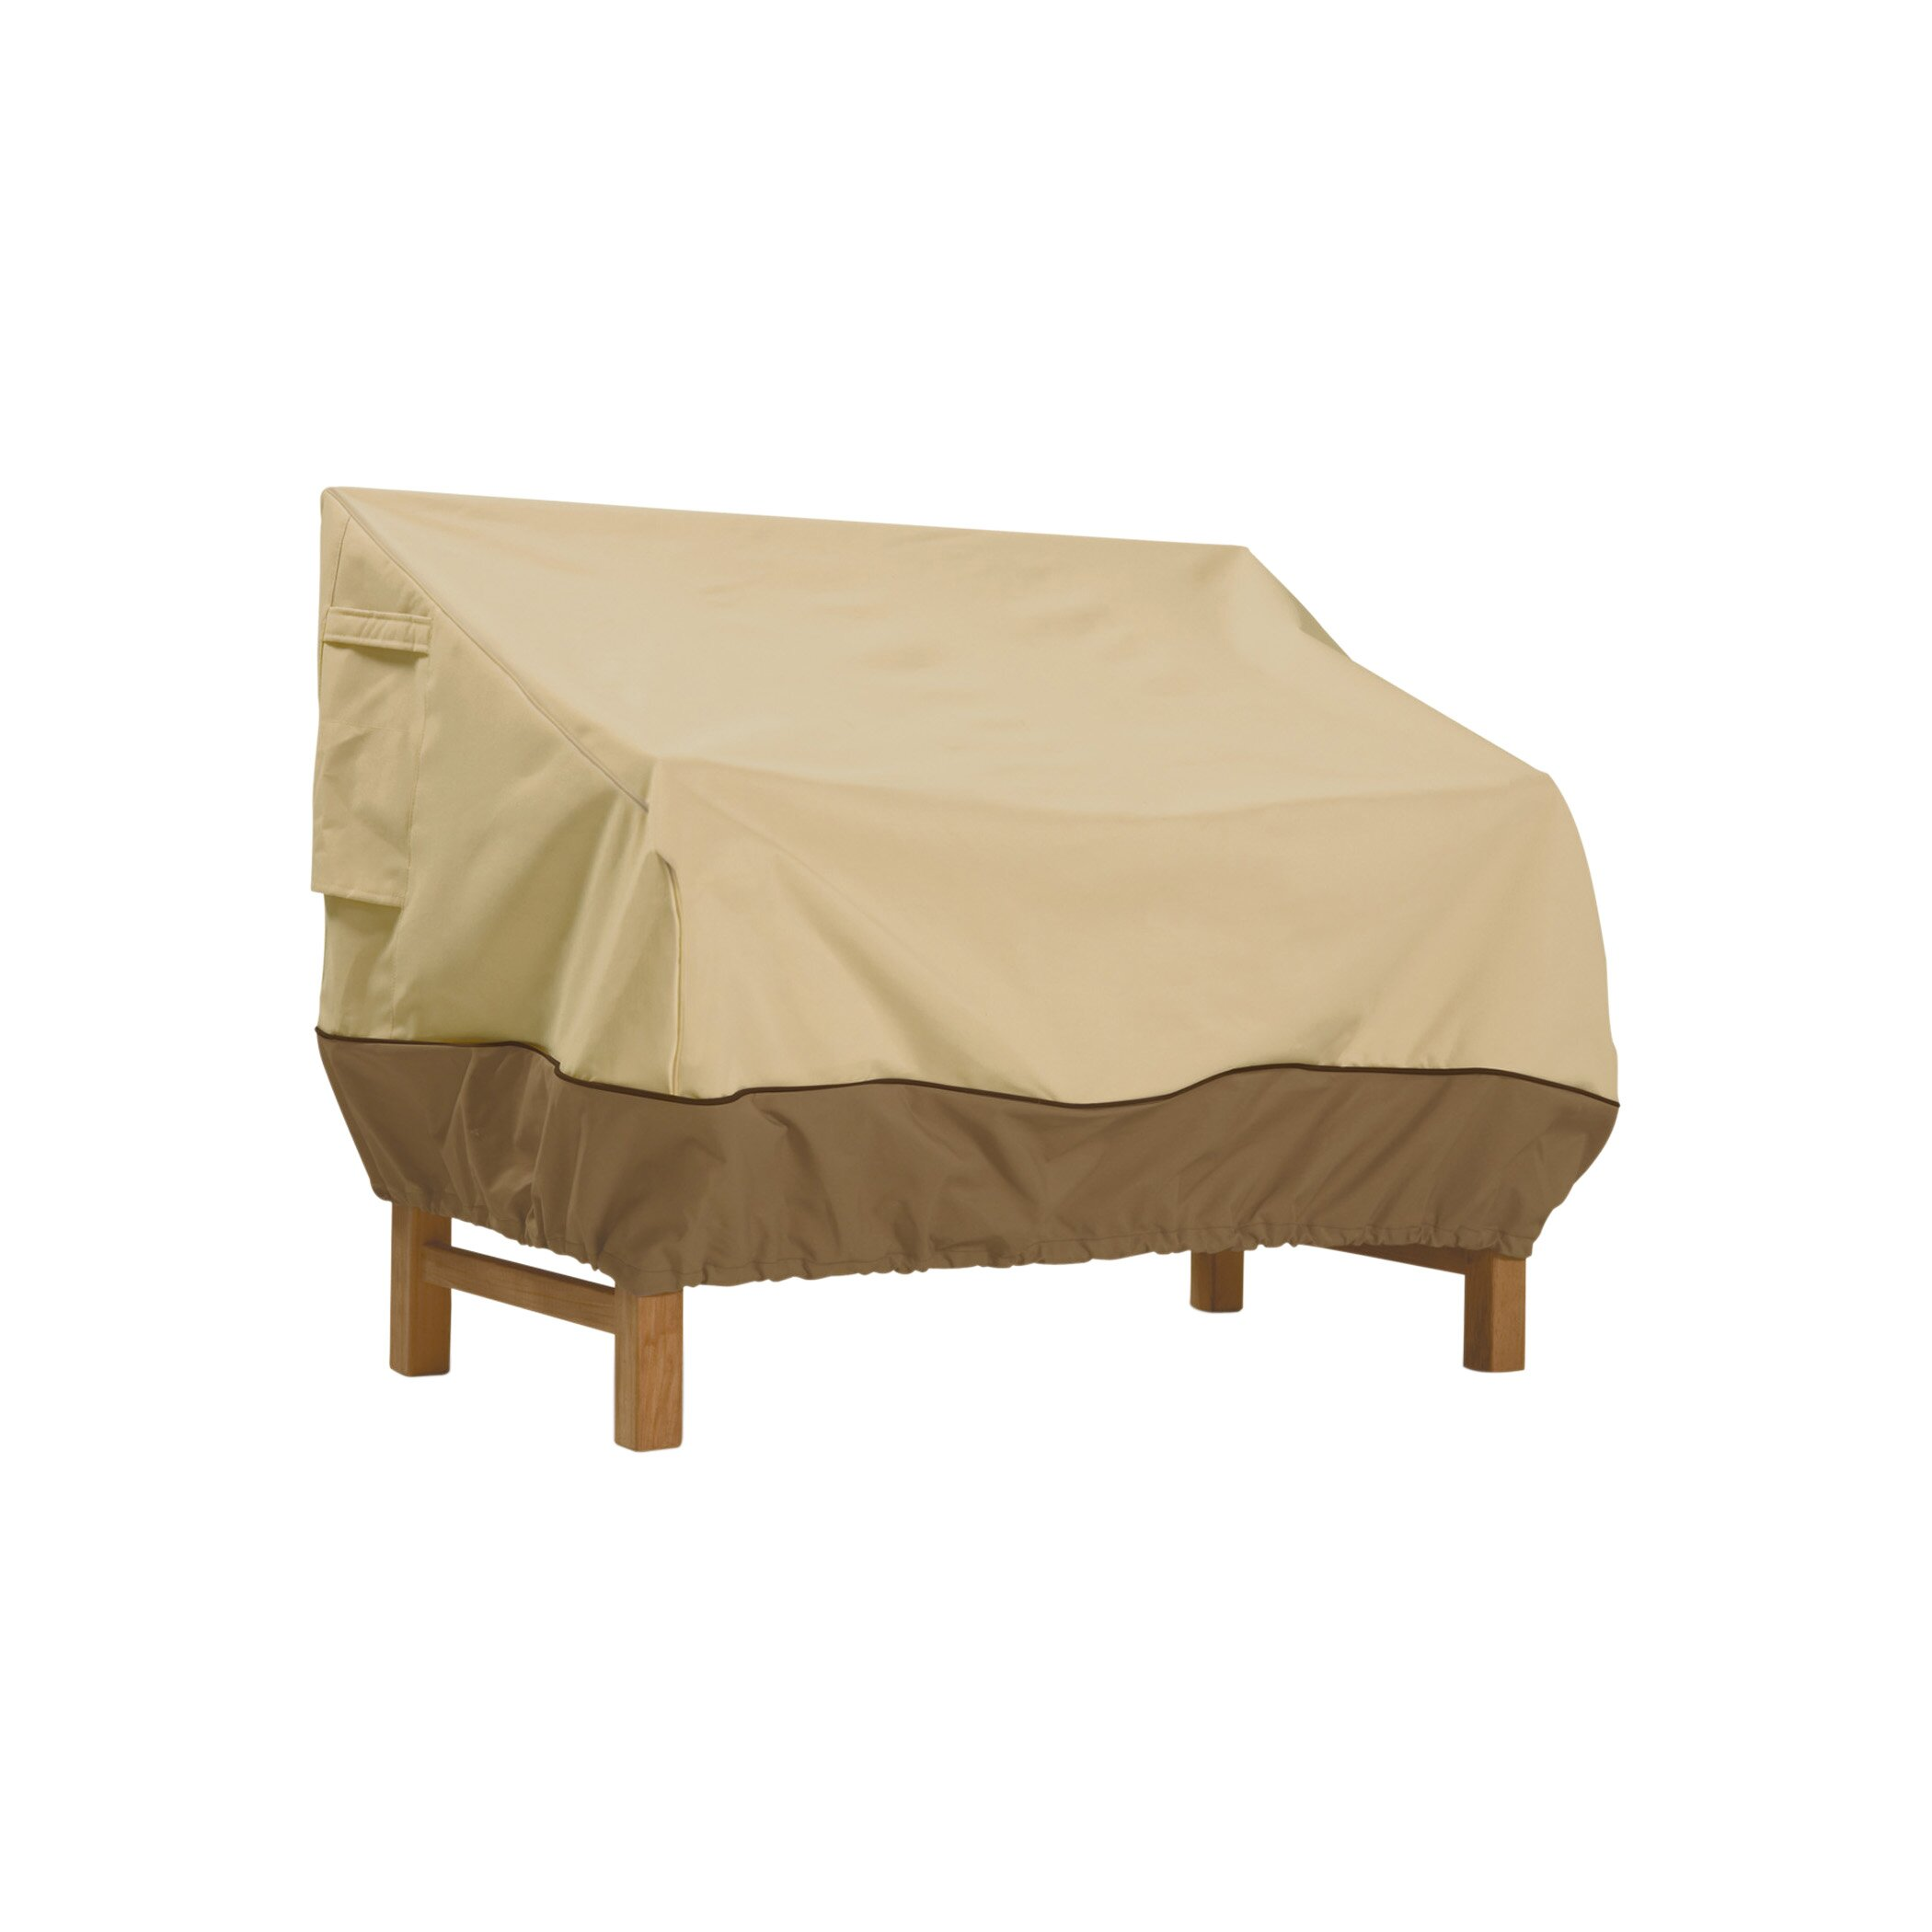 Classic accessories veranda patio loveseat cover reviews for Wayfair garden furniture covers